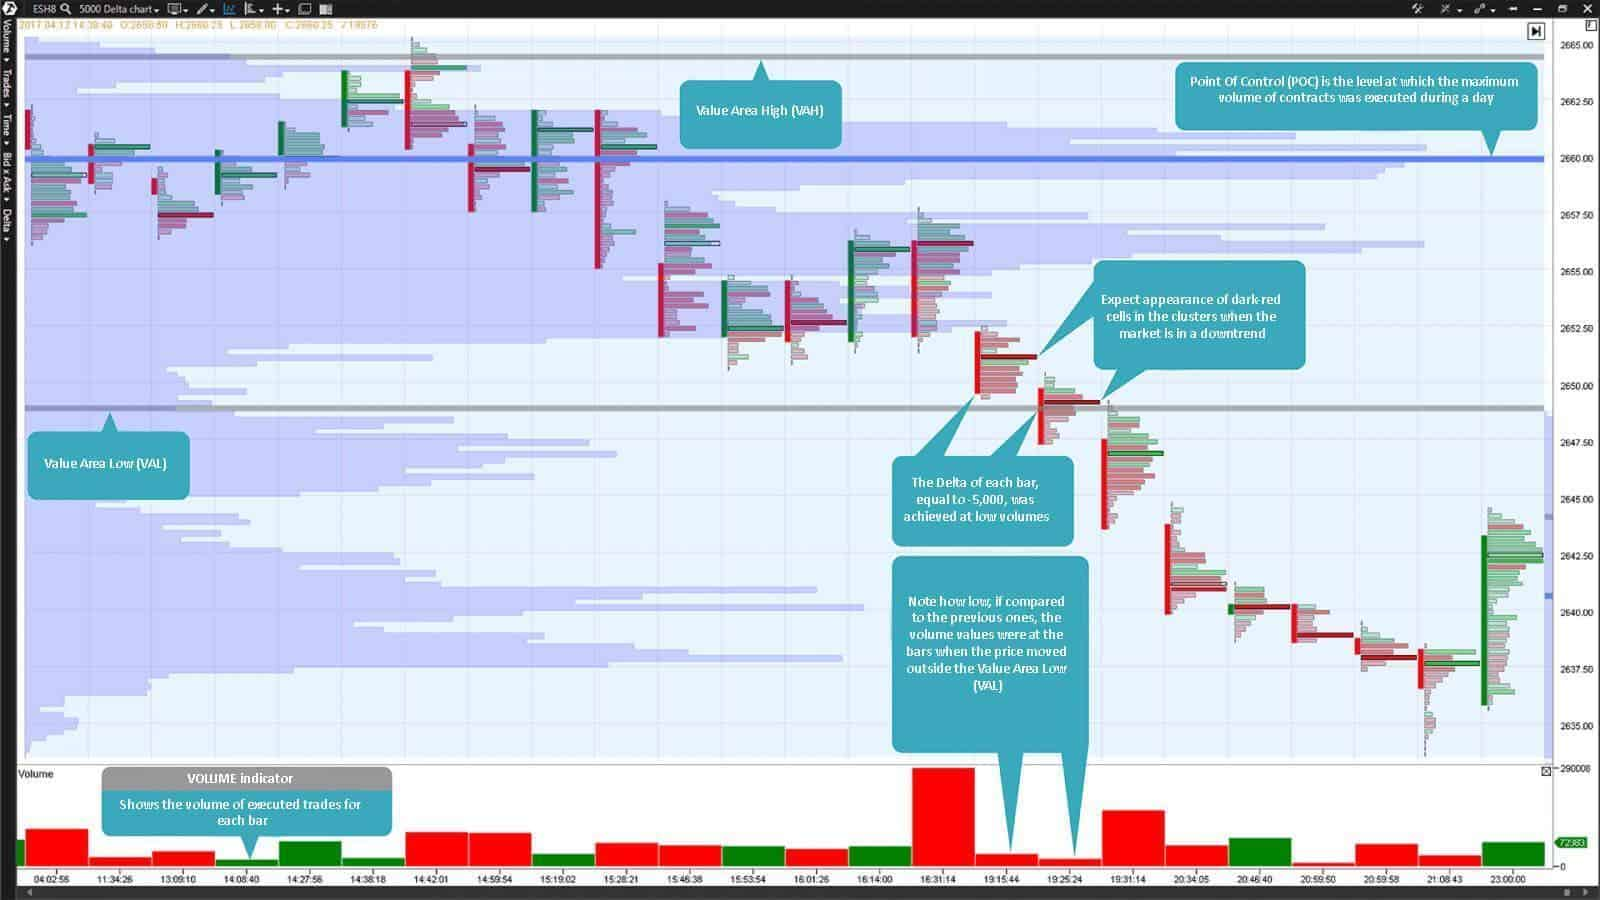 E-mini S&P 500 futures Footprint build by the Delta with the value of 5,000 contracts